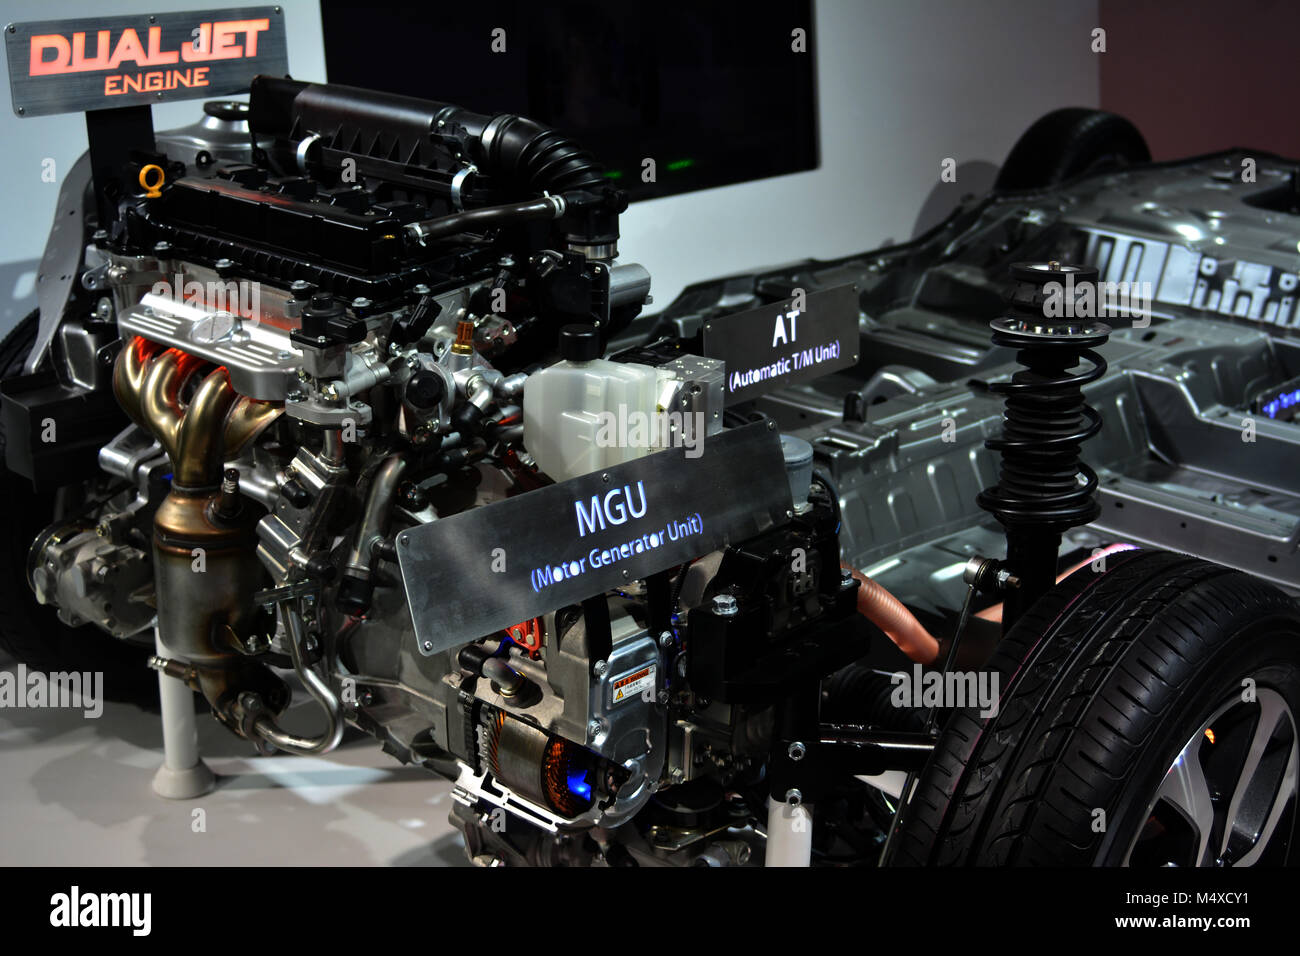 Engine at Auto Expo - Stock Image